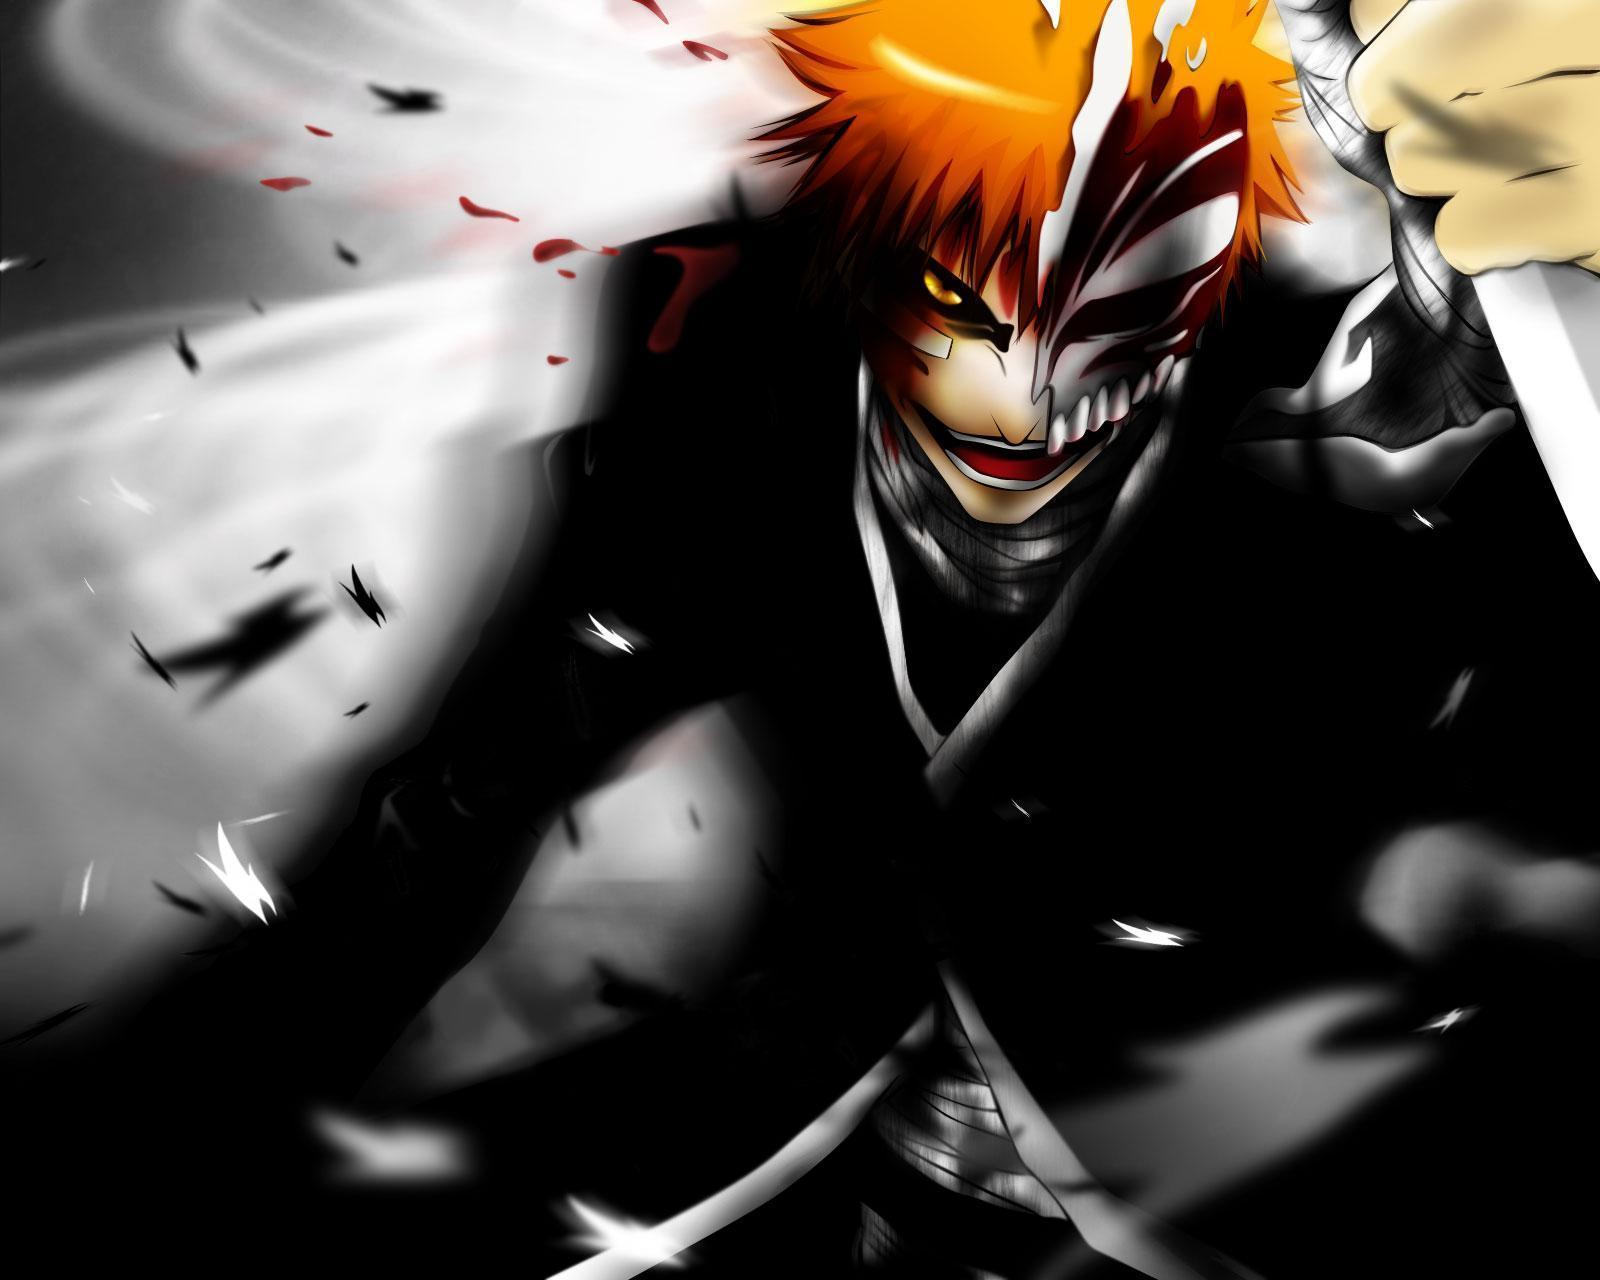 [SPOILER Manga] Bleach Hollow-Ichigo-hollow-ichigo-4751145-1600-1280